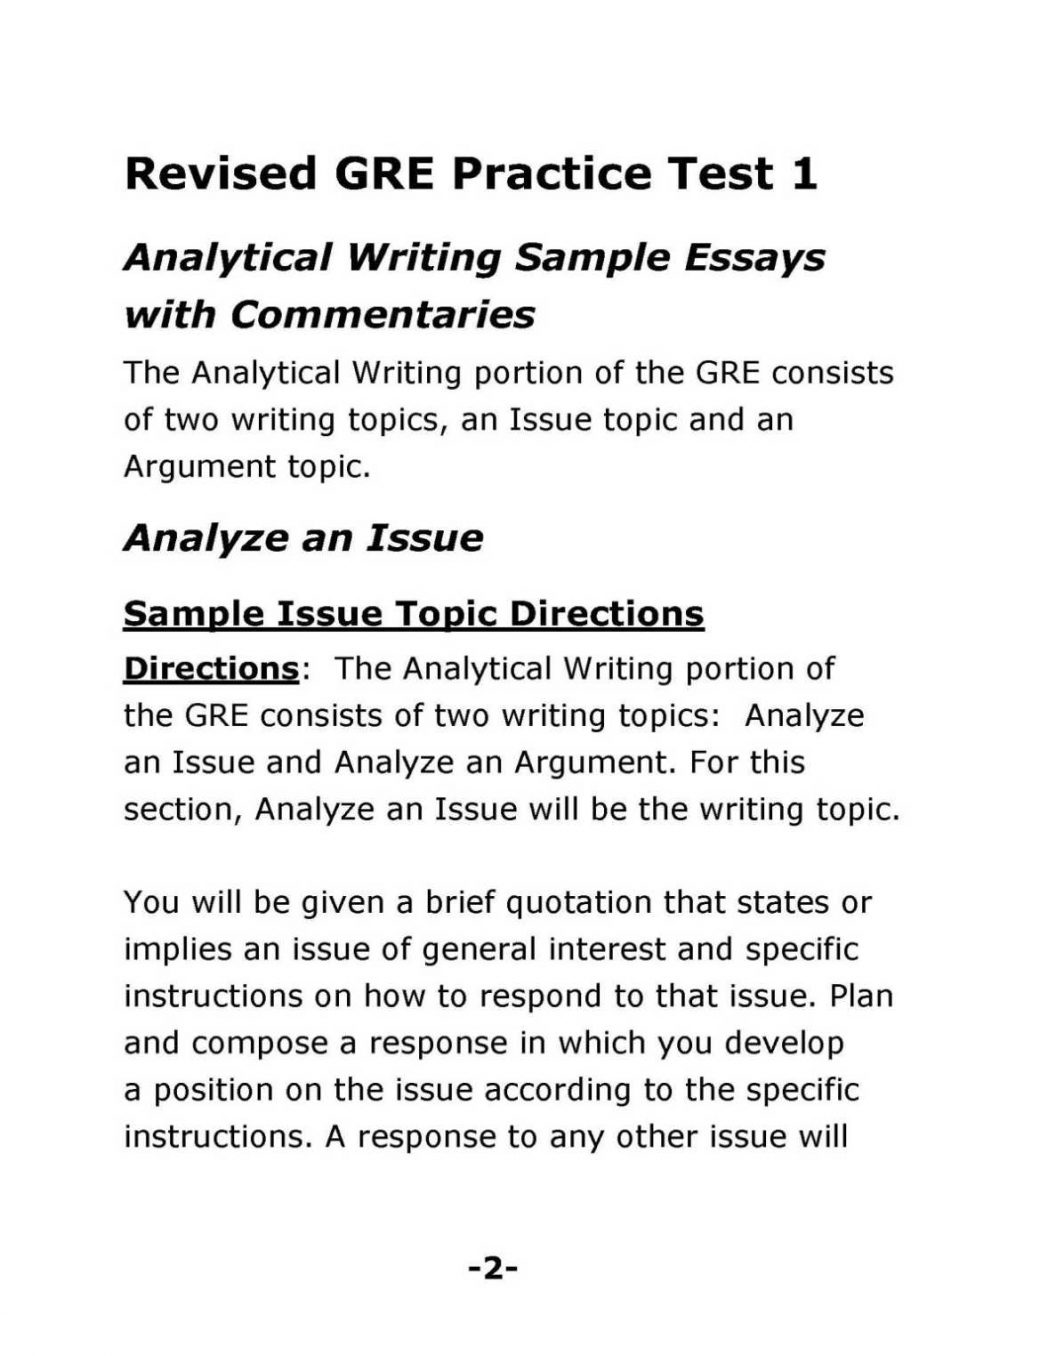 009 Argumentative Analysis Essay Topics Good Persuasive For Gre Arguments Sample Test Papers With Soluti Tips Pdf 1048x1356 Unusual Argument Examples Questions Analytical Writing Samples Full